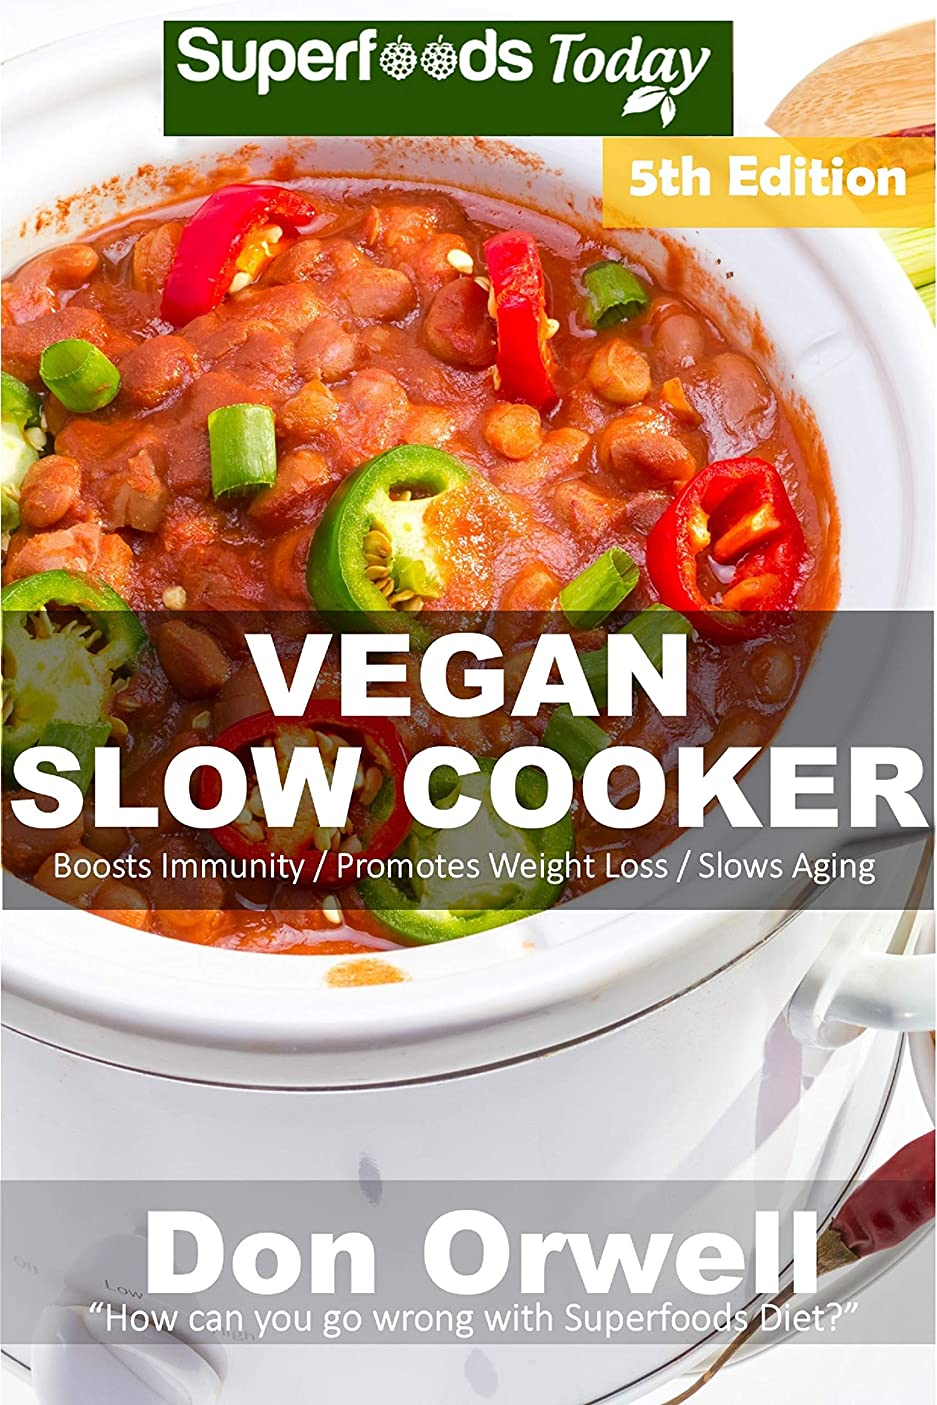 パケット設計図口ひげVegan Slow Cooker: Over 50 Vegan Quick and Easy Gluten Free Low Cholesterol Whole Foods Recipes full of Antioxidants and Phytochemicals (English Edition)